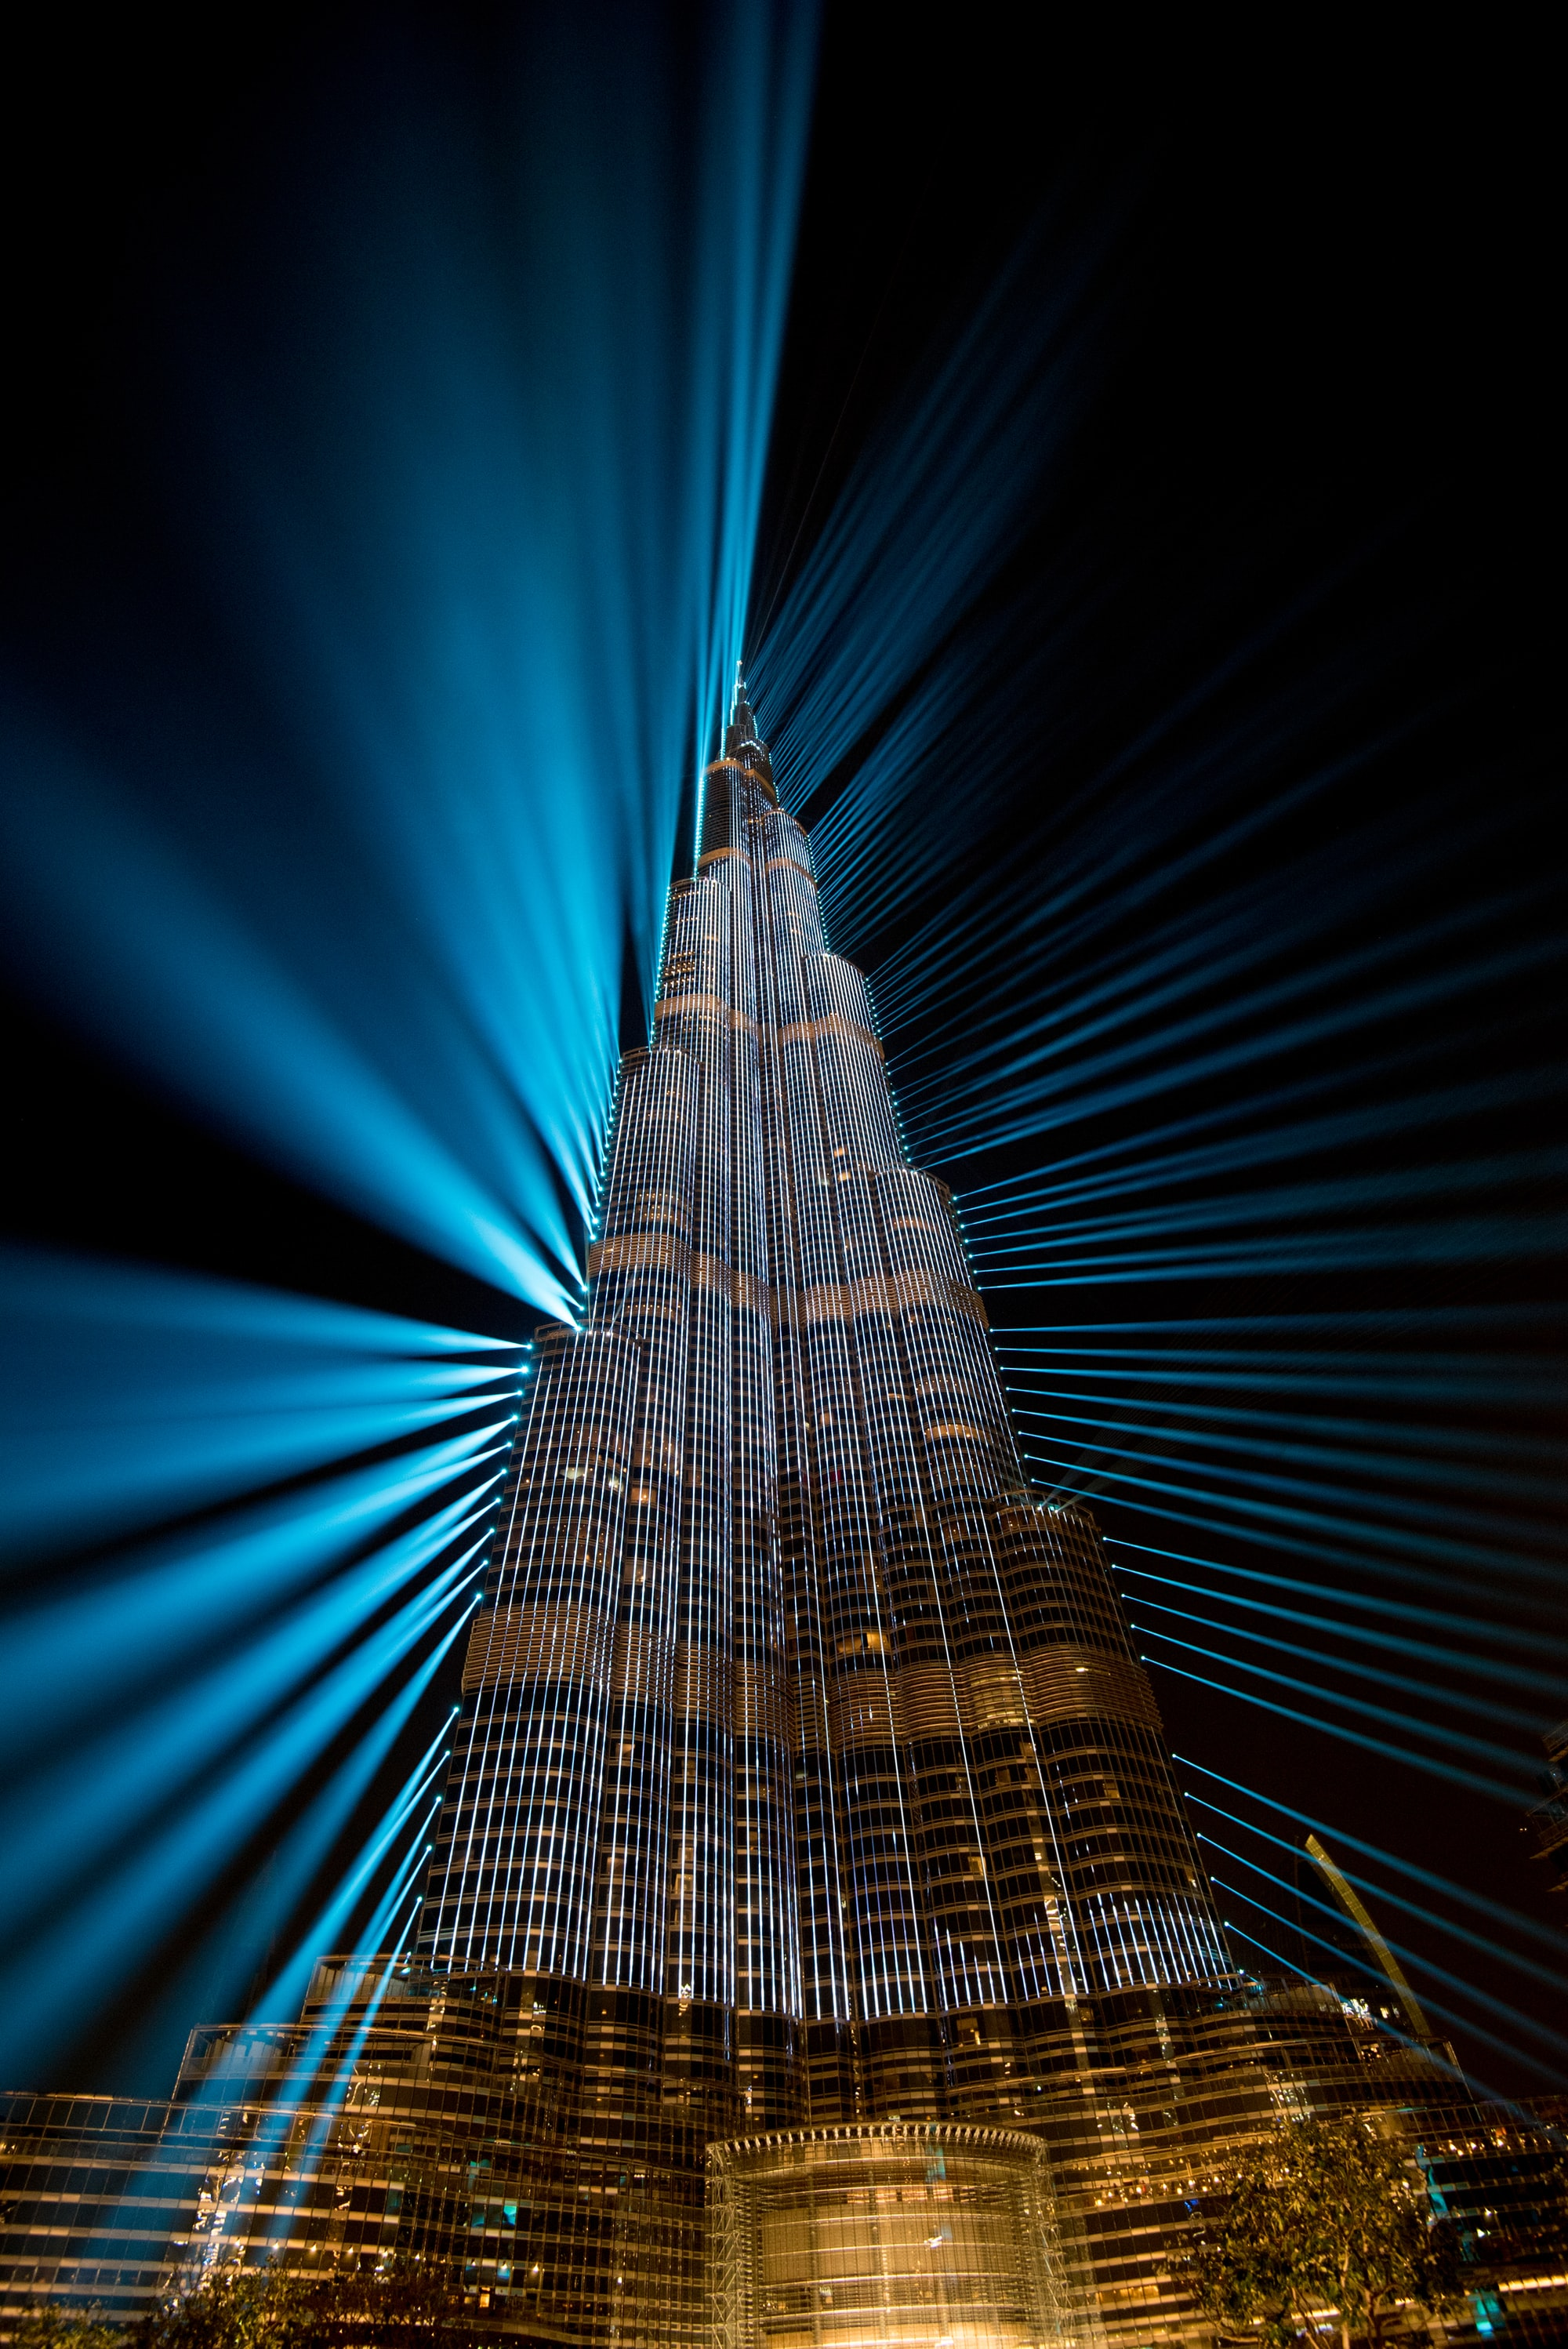 The Burj Khalifa is the tallest tower in the world.   What an impressive building!